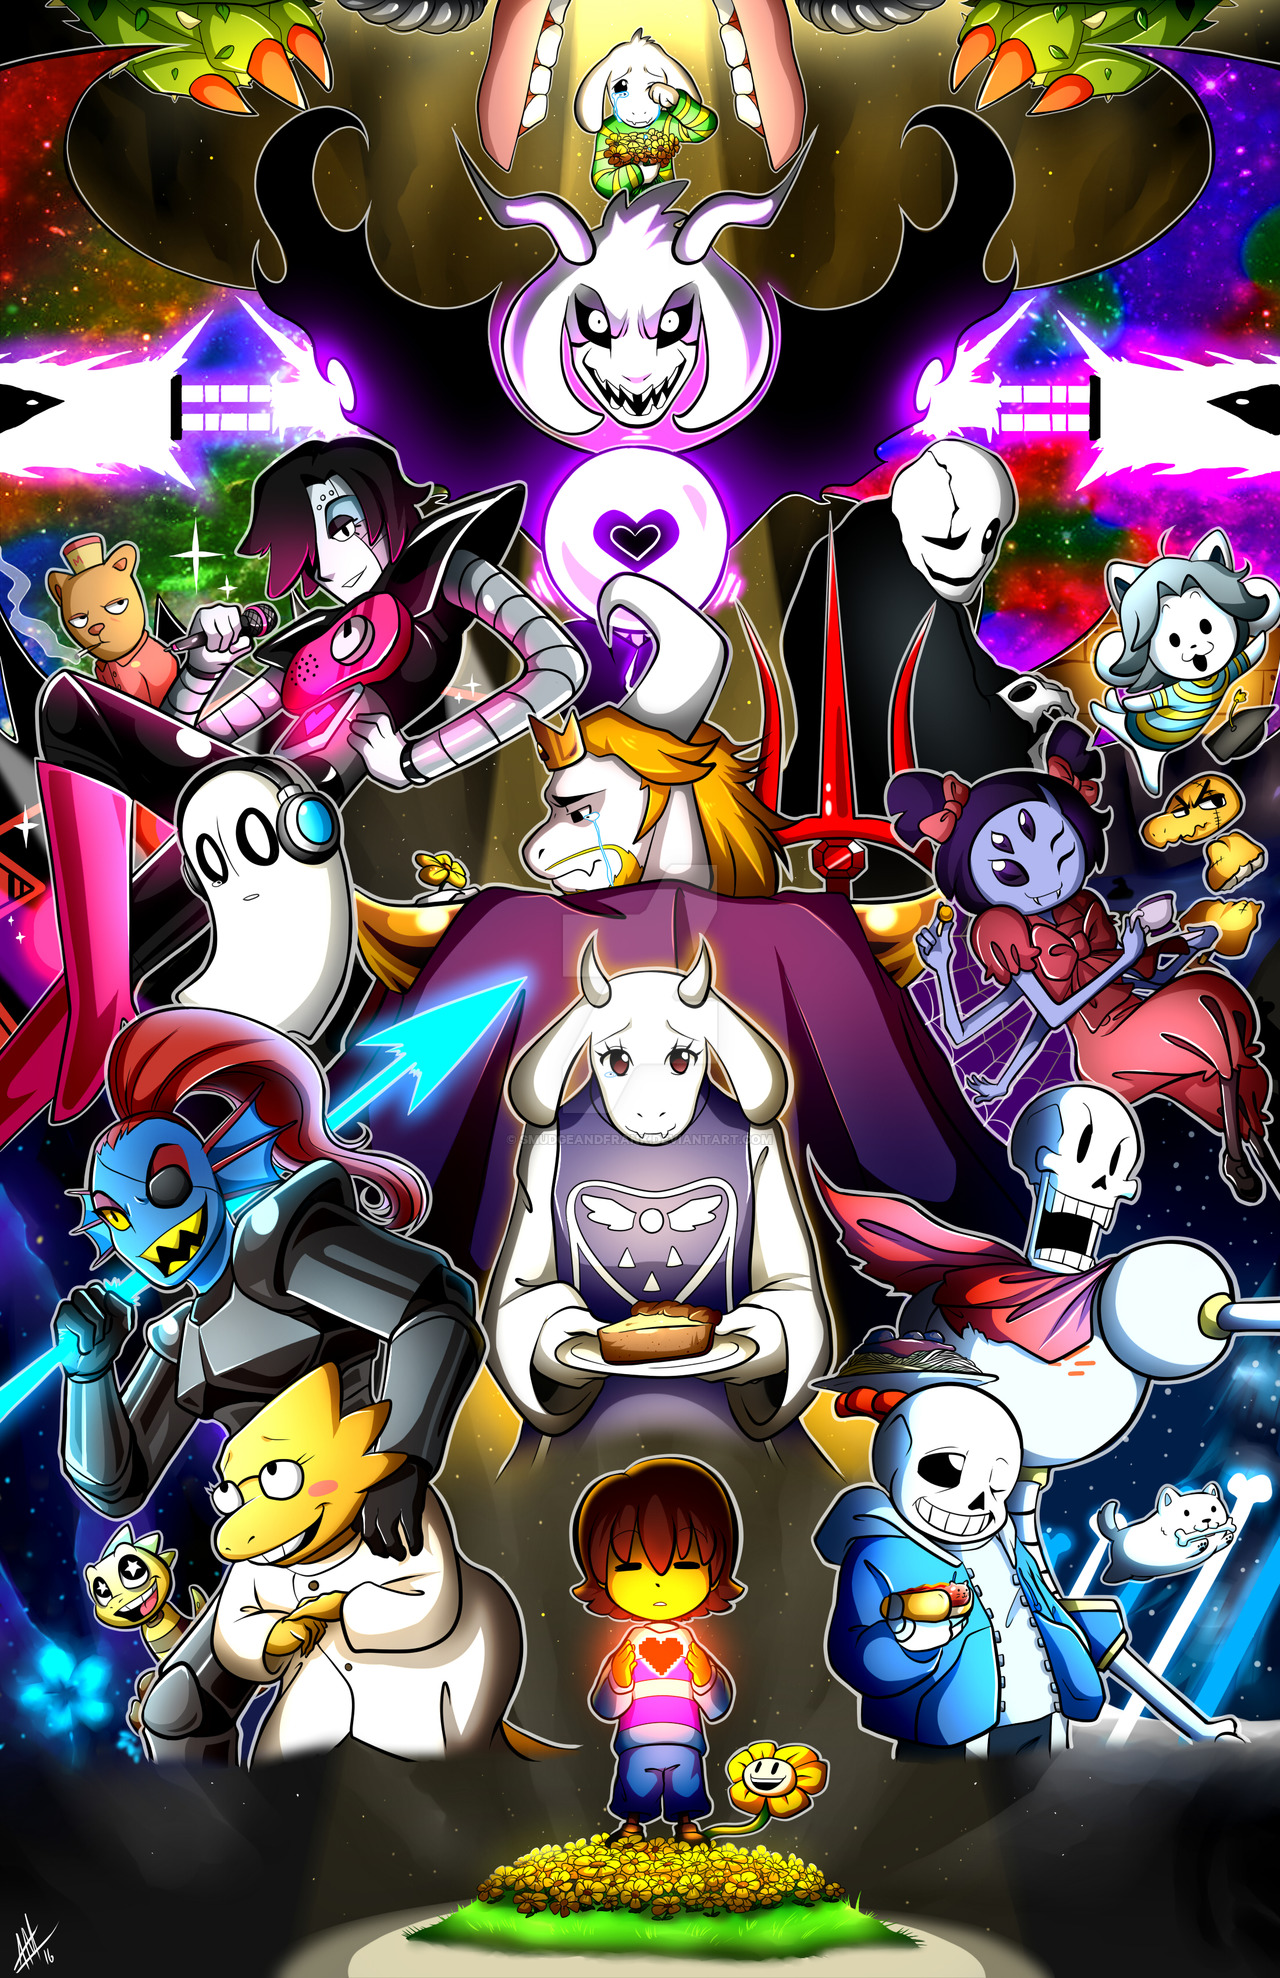 UNDERTALE-The Game images Undertale HD wallpaper and background photos